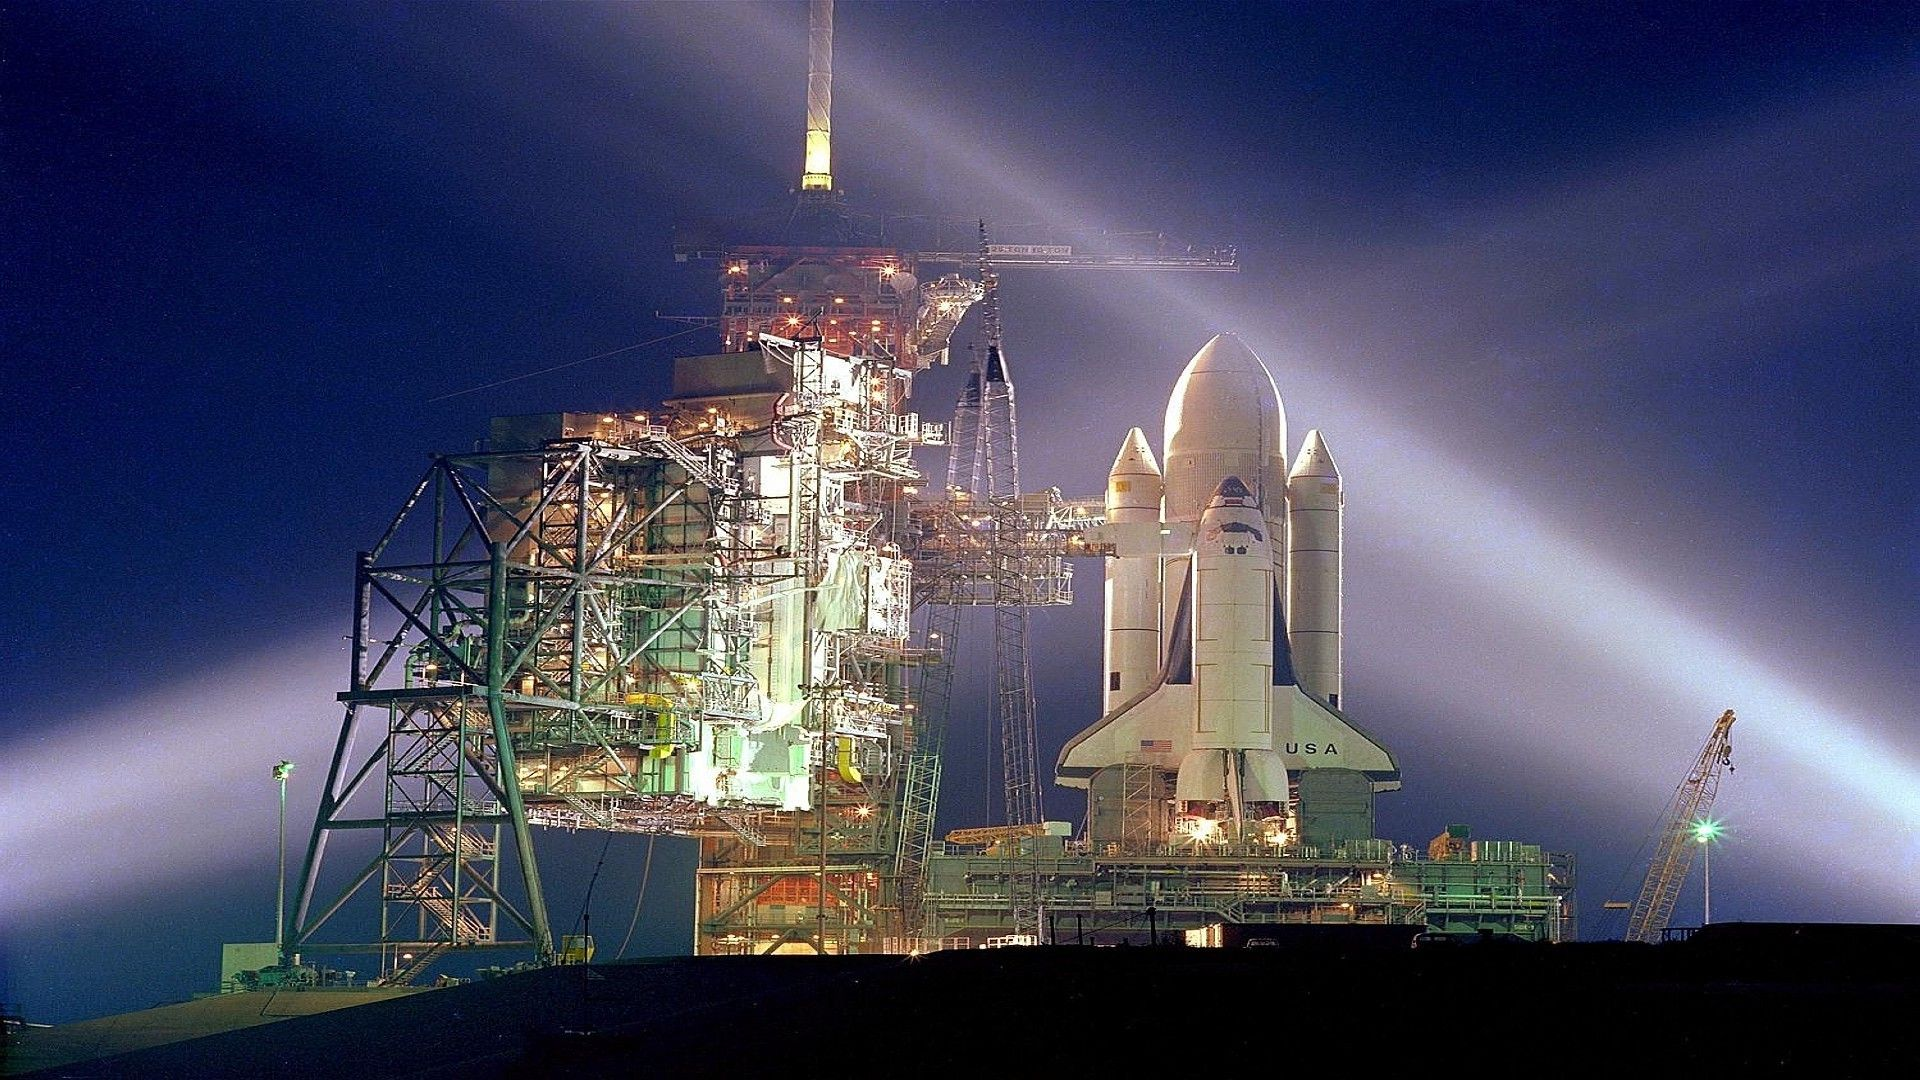 Space Shuttle Wallpaper 1920x1080 Download Columbia Space